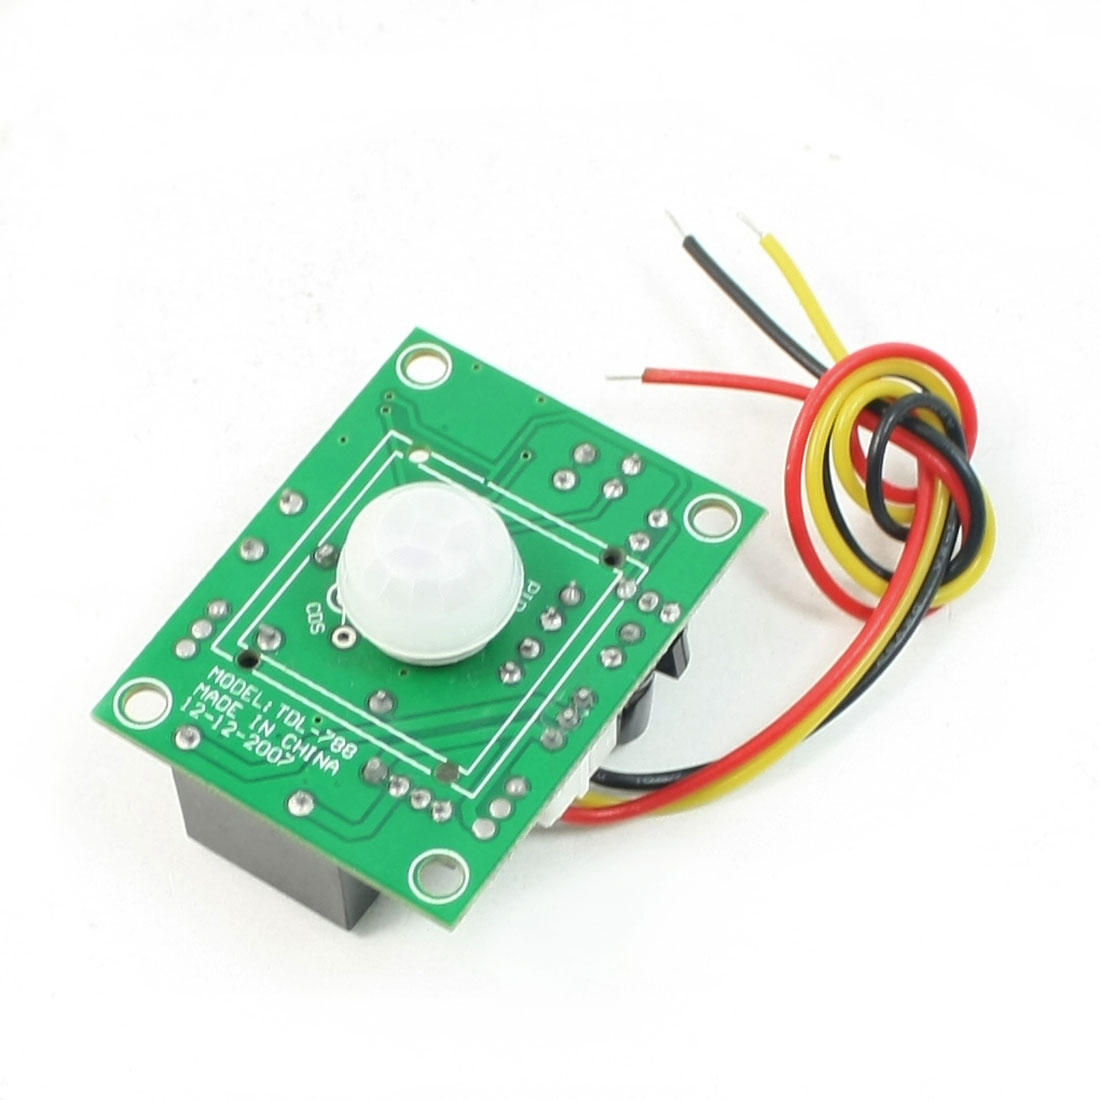 DC 5-24 Volt Replacement Wall Mount Motion Sensor Module TDL-788